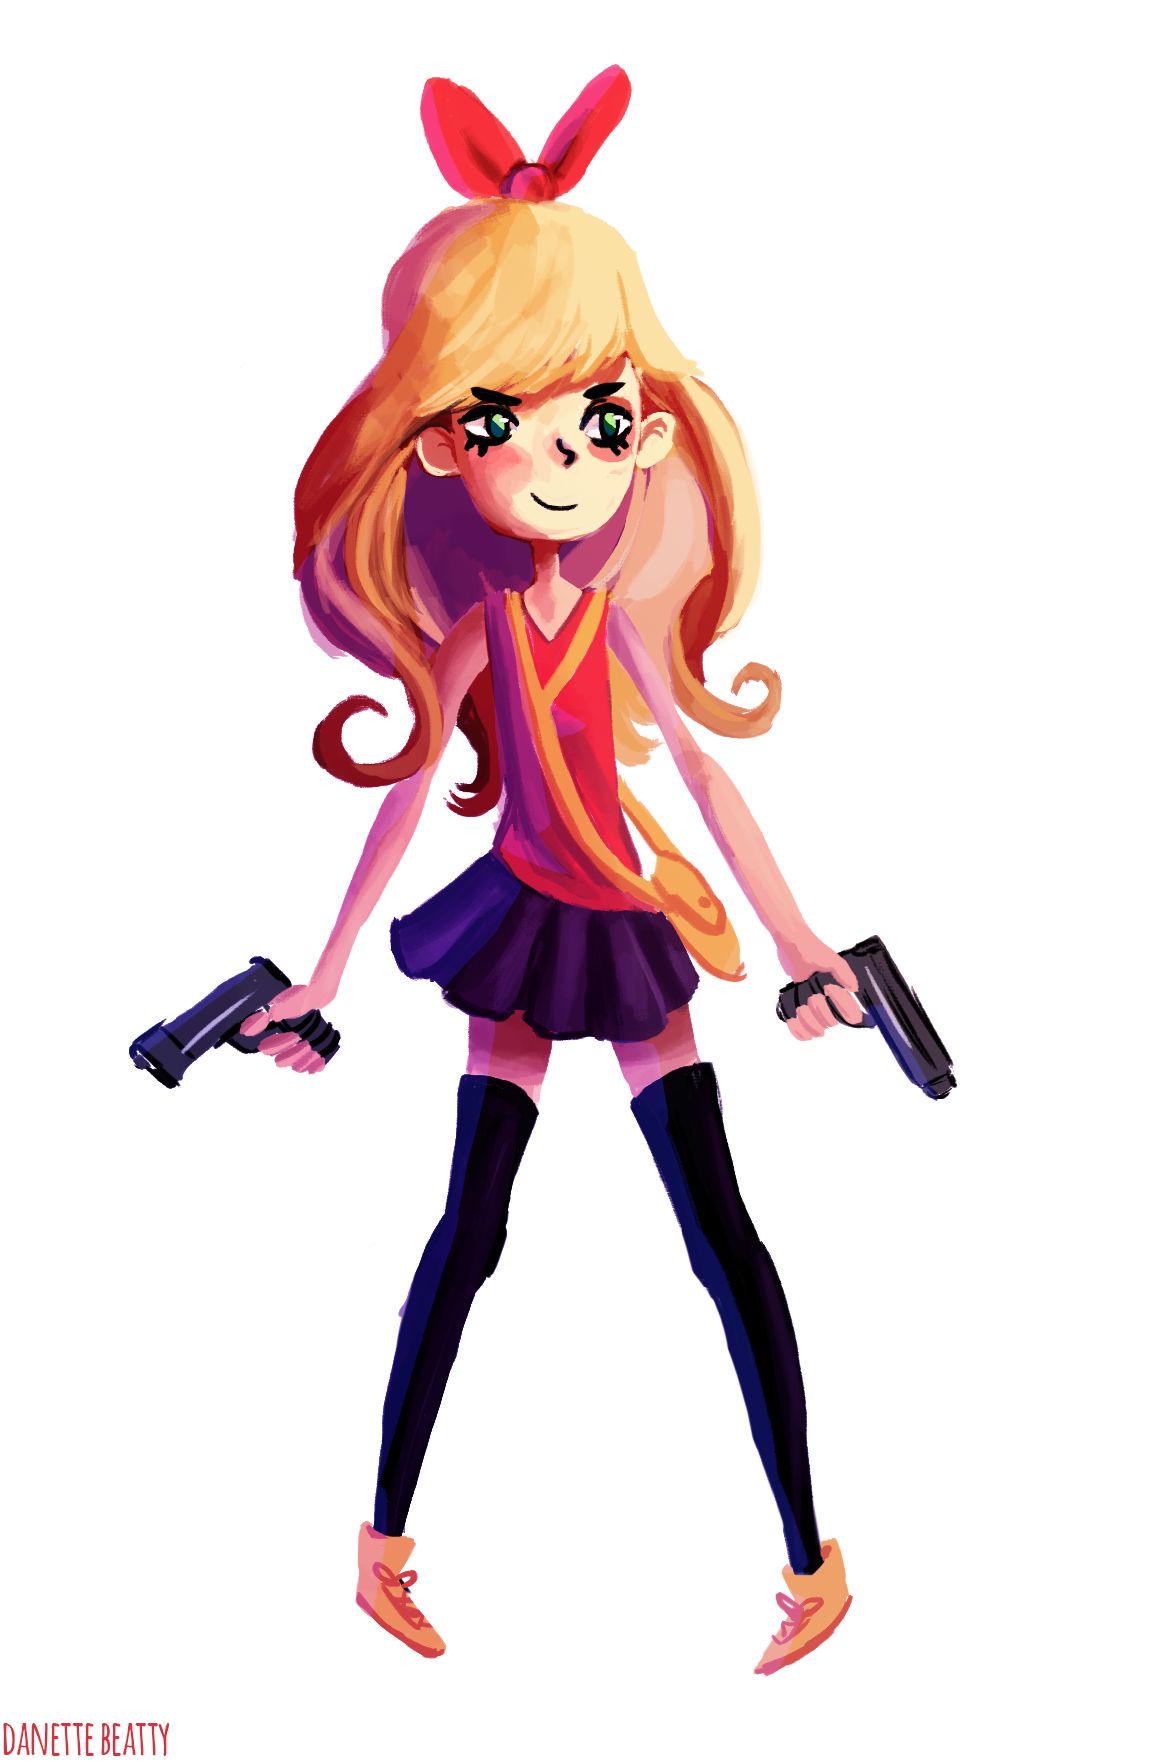 #212 is a girl with some guns